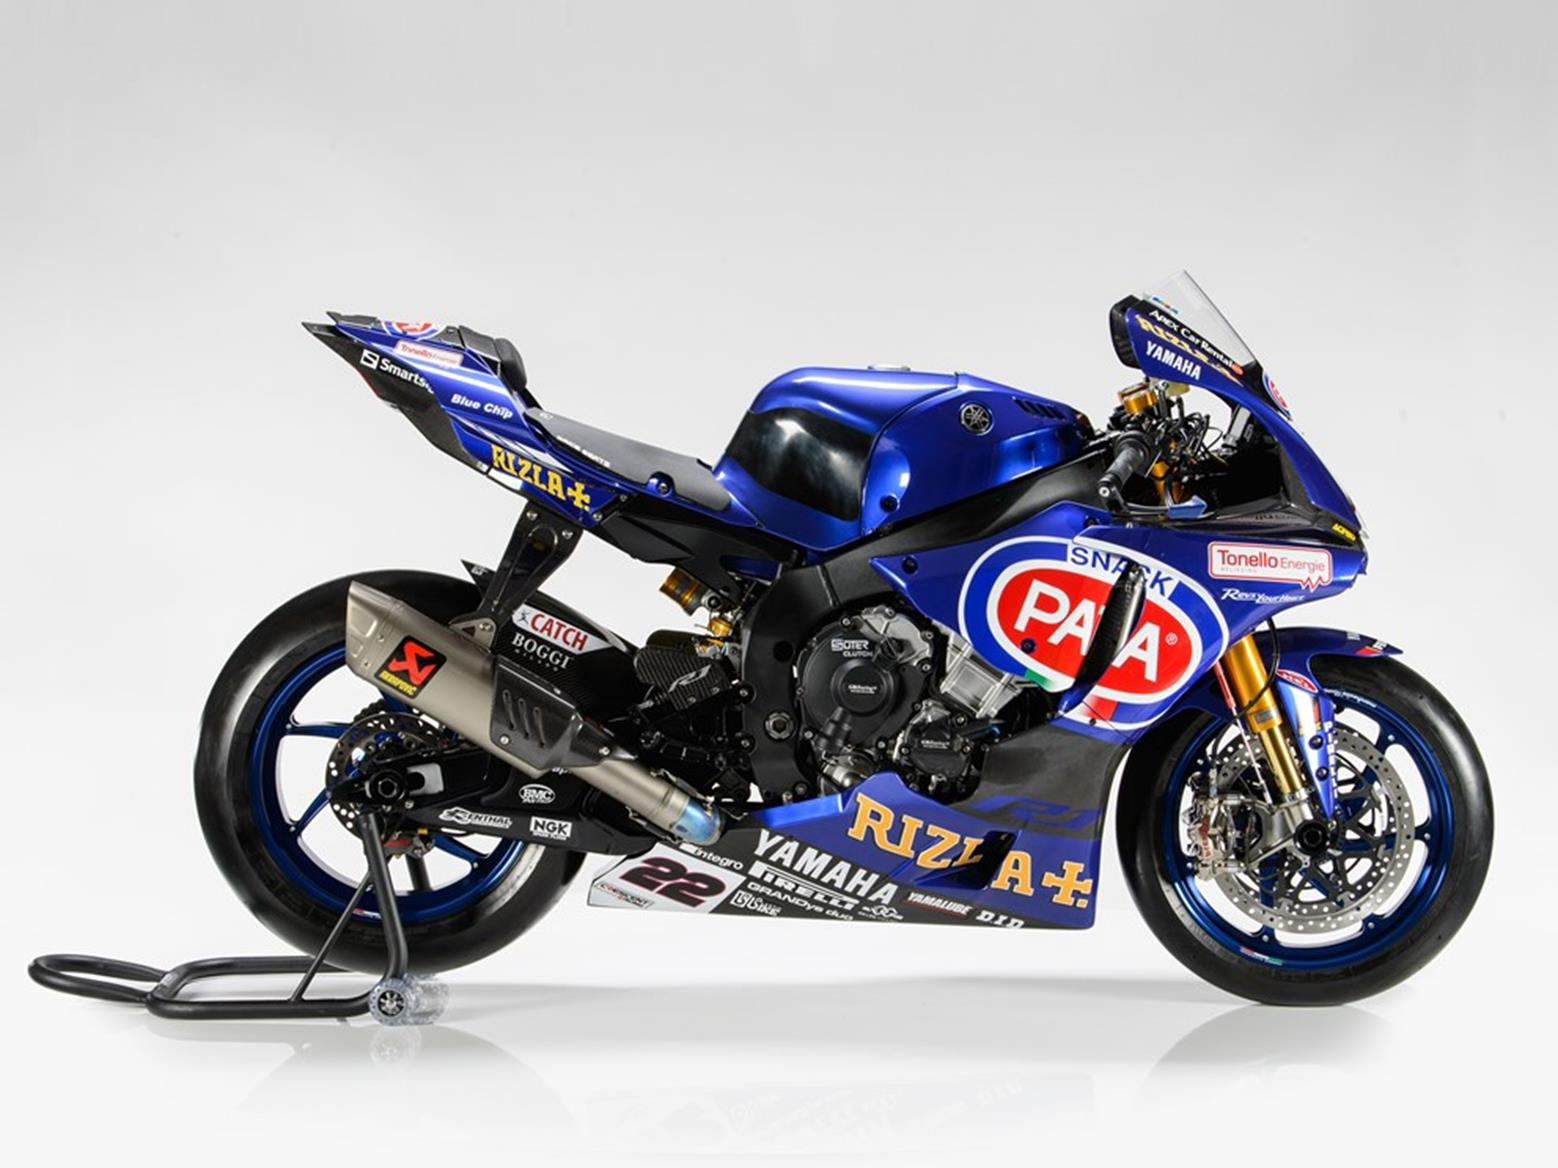 Gallery: PATA Yamaha lift covers off 2017 YZF-R1 | MCN